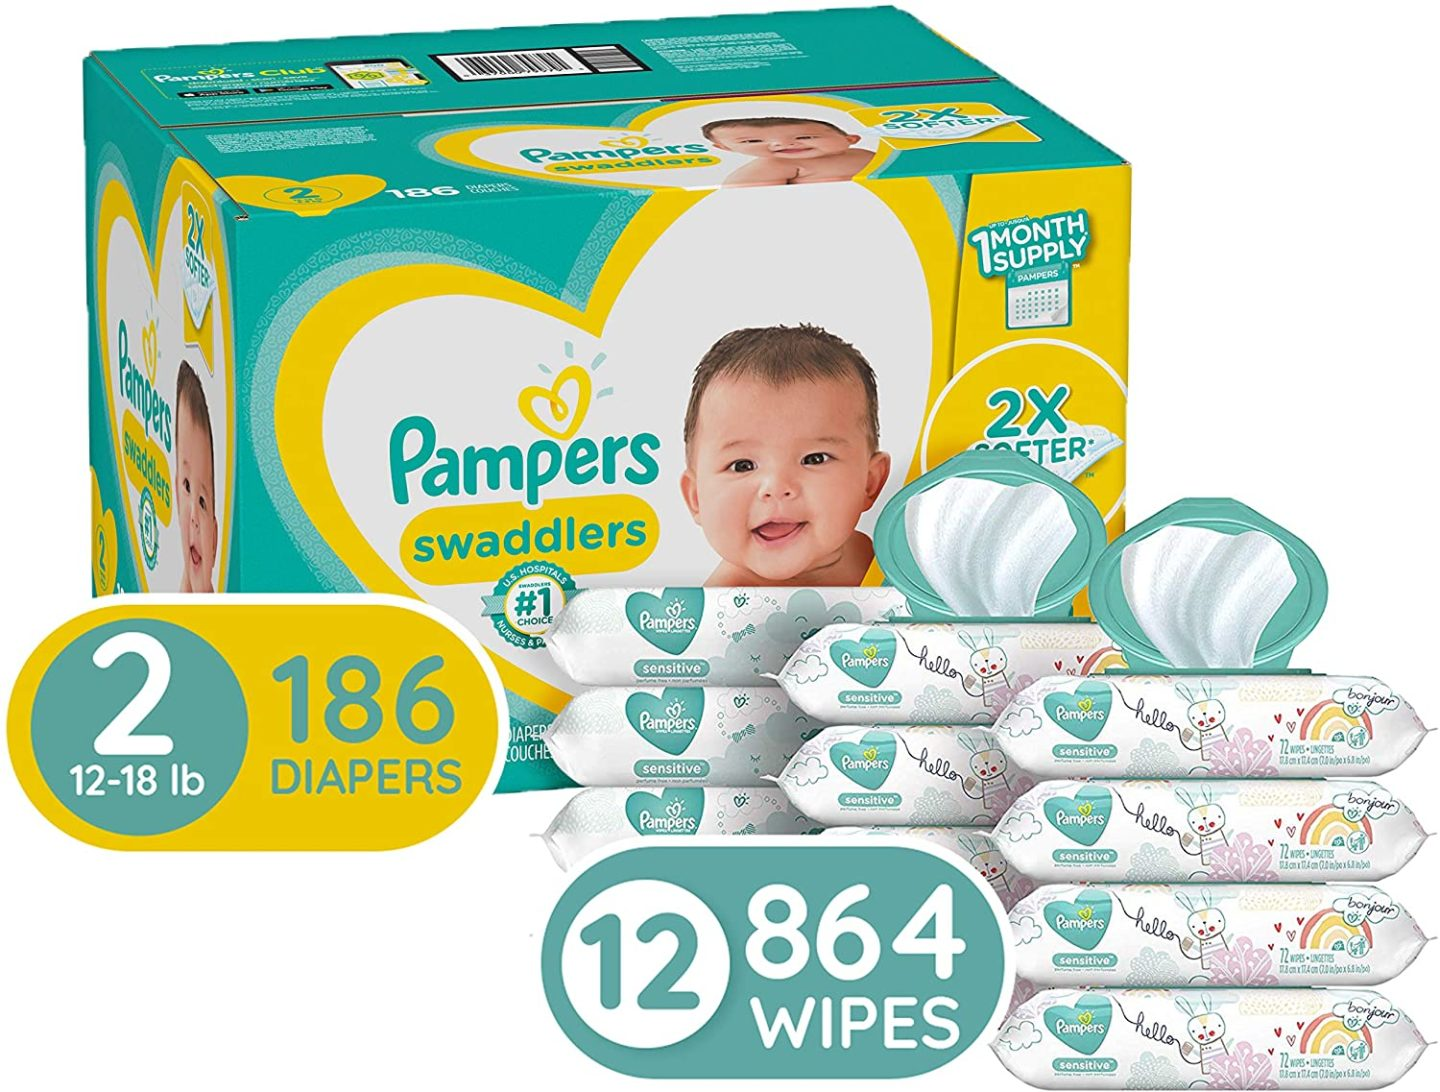 Top essential items for baby's first year